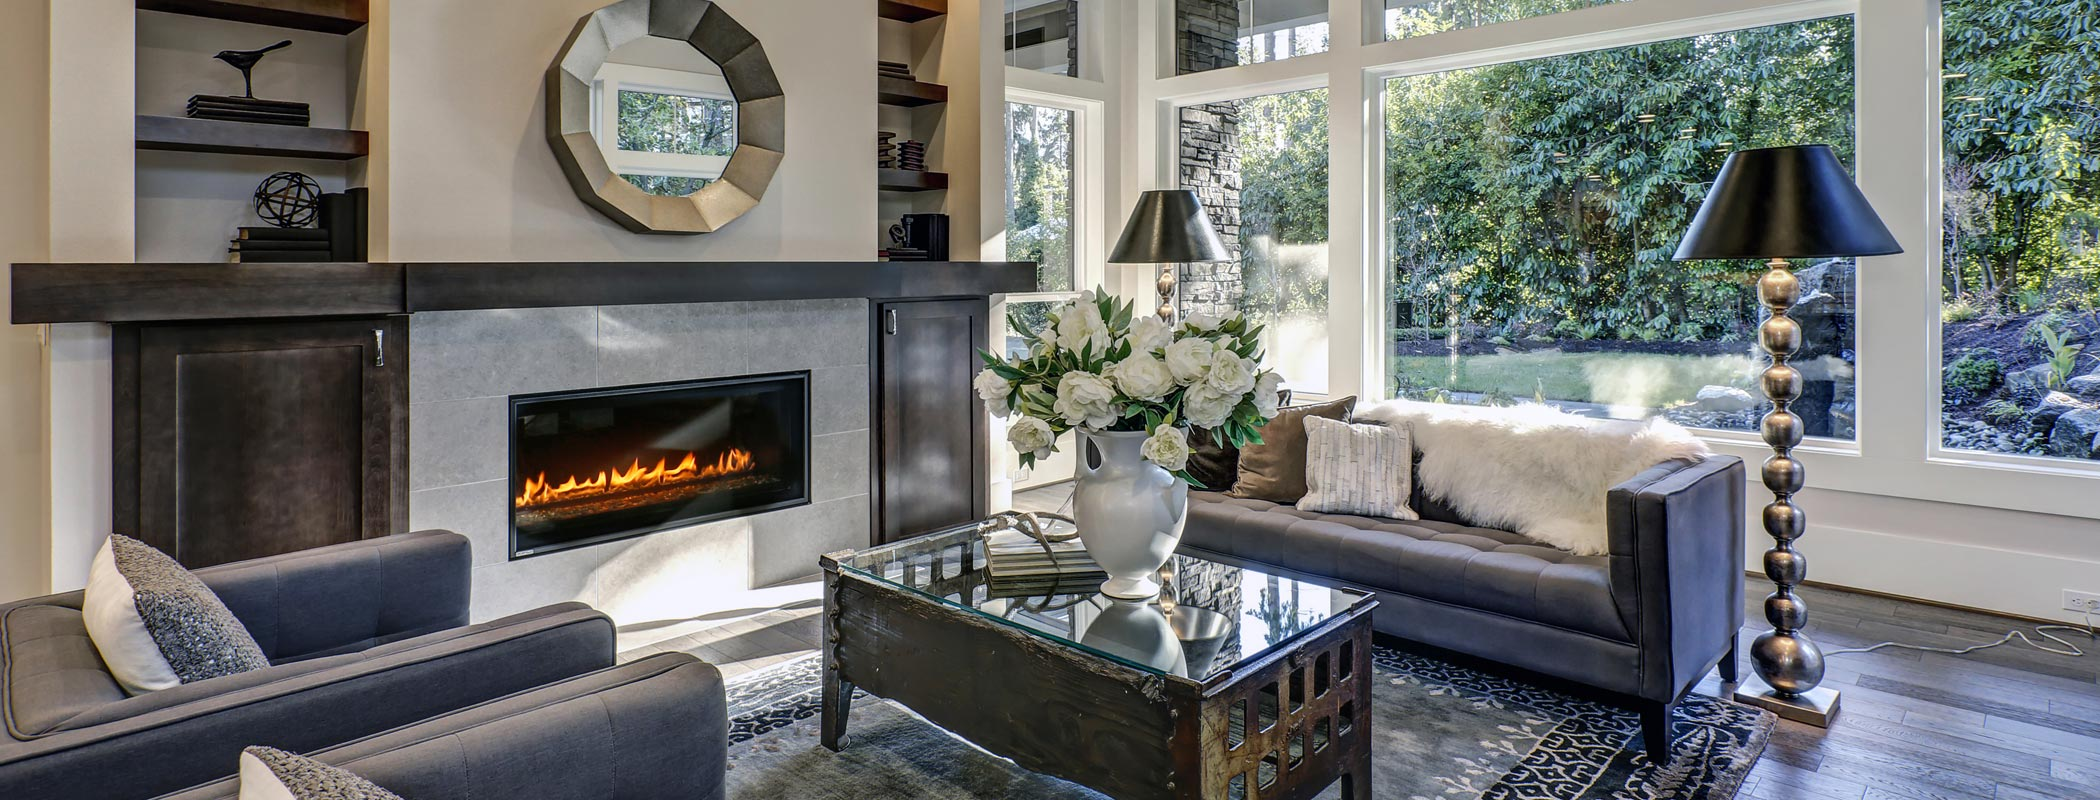 A luxurious living room interior with modern fireplace installed on the wall and black leather couches and wide open windows with the view of greenery garden